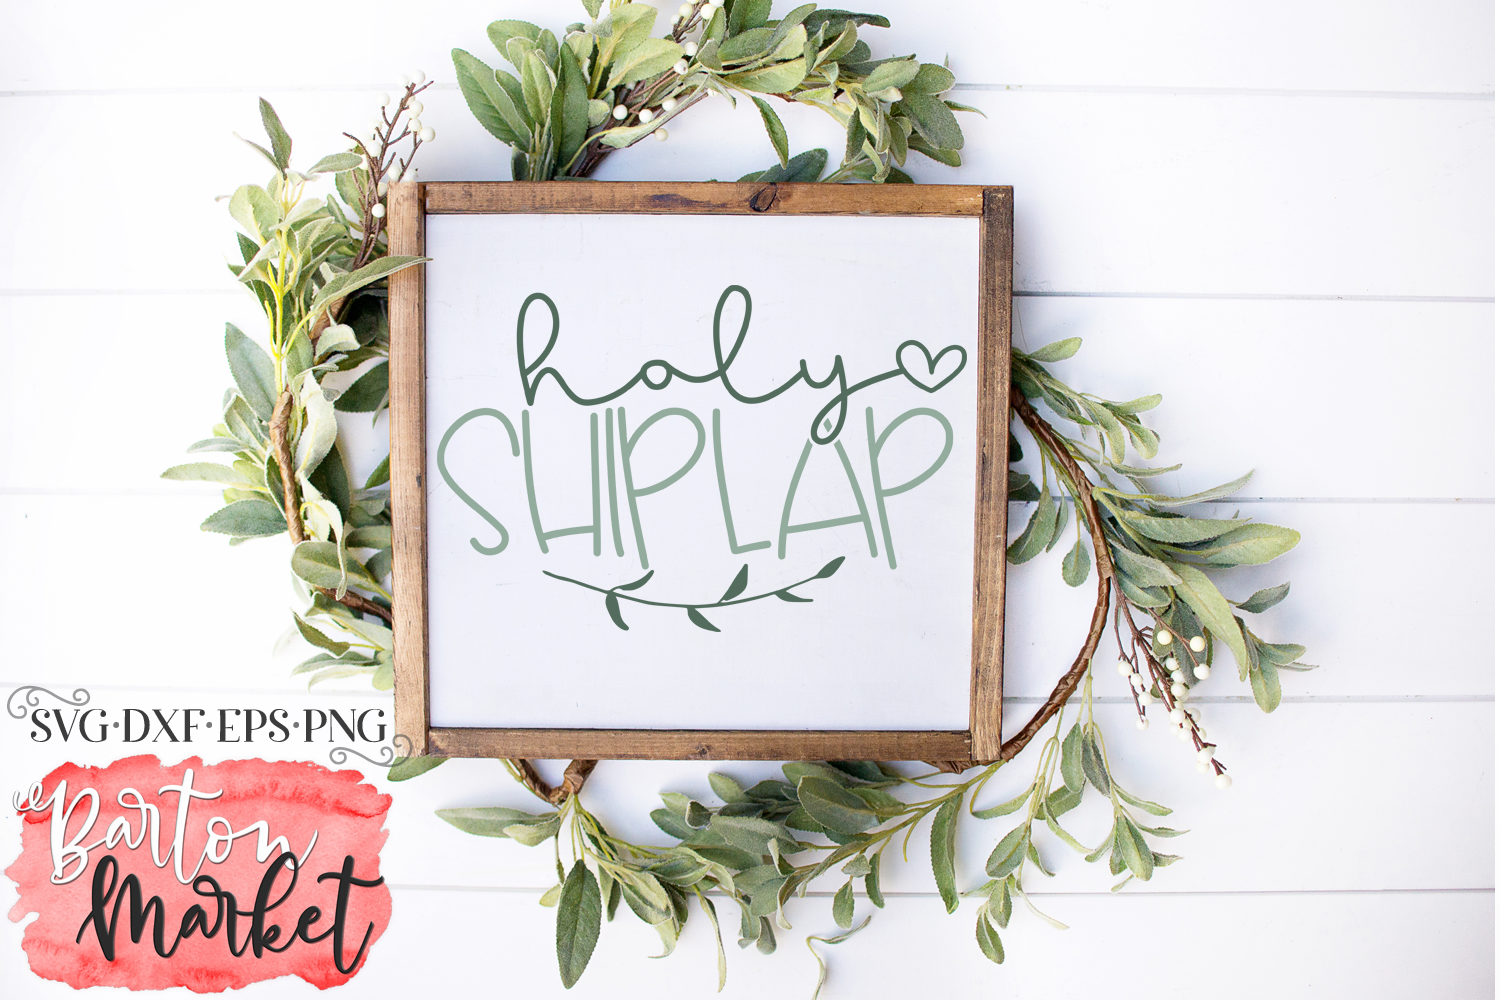 Holy Shiplap SVG DXF EPS PNG example image 1